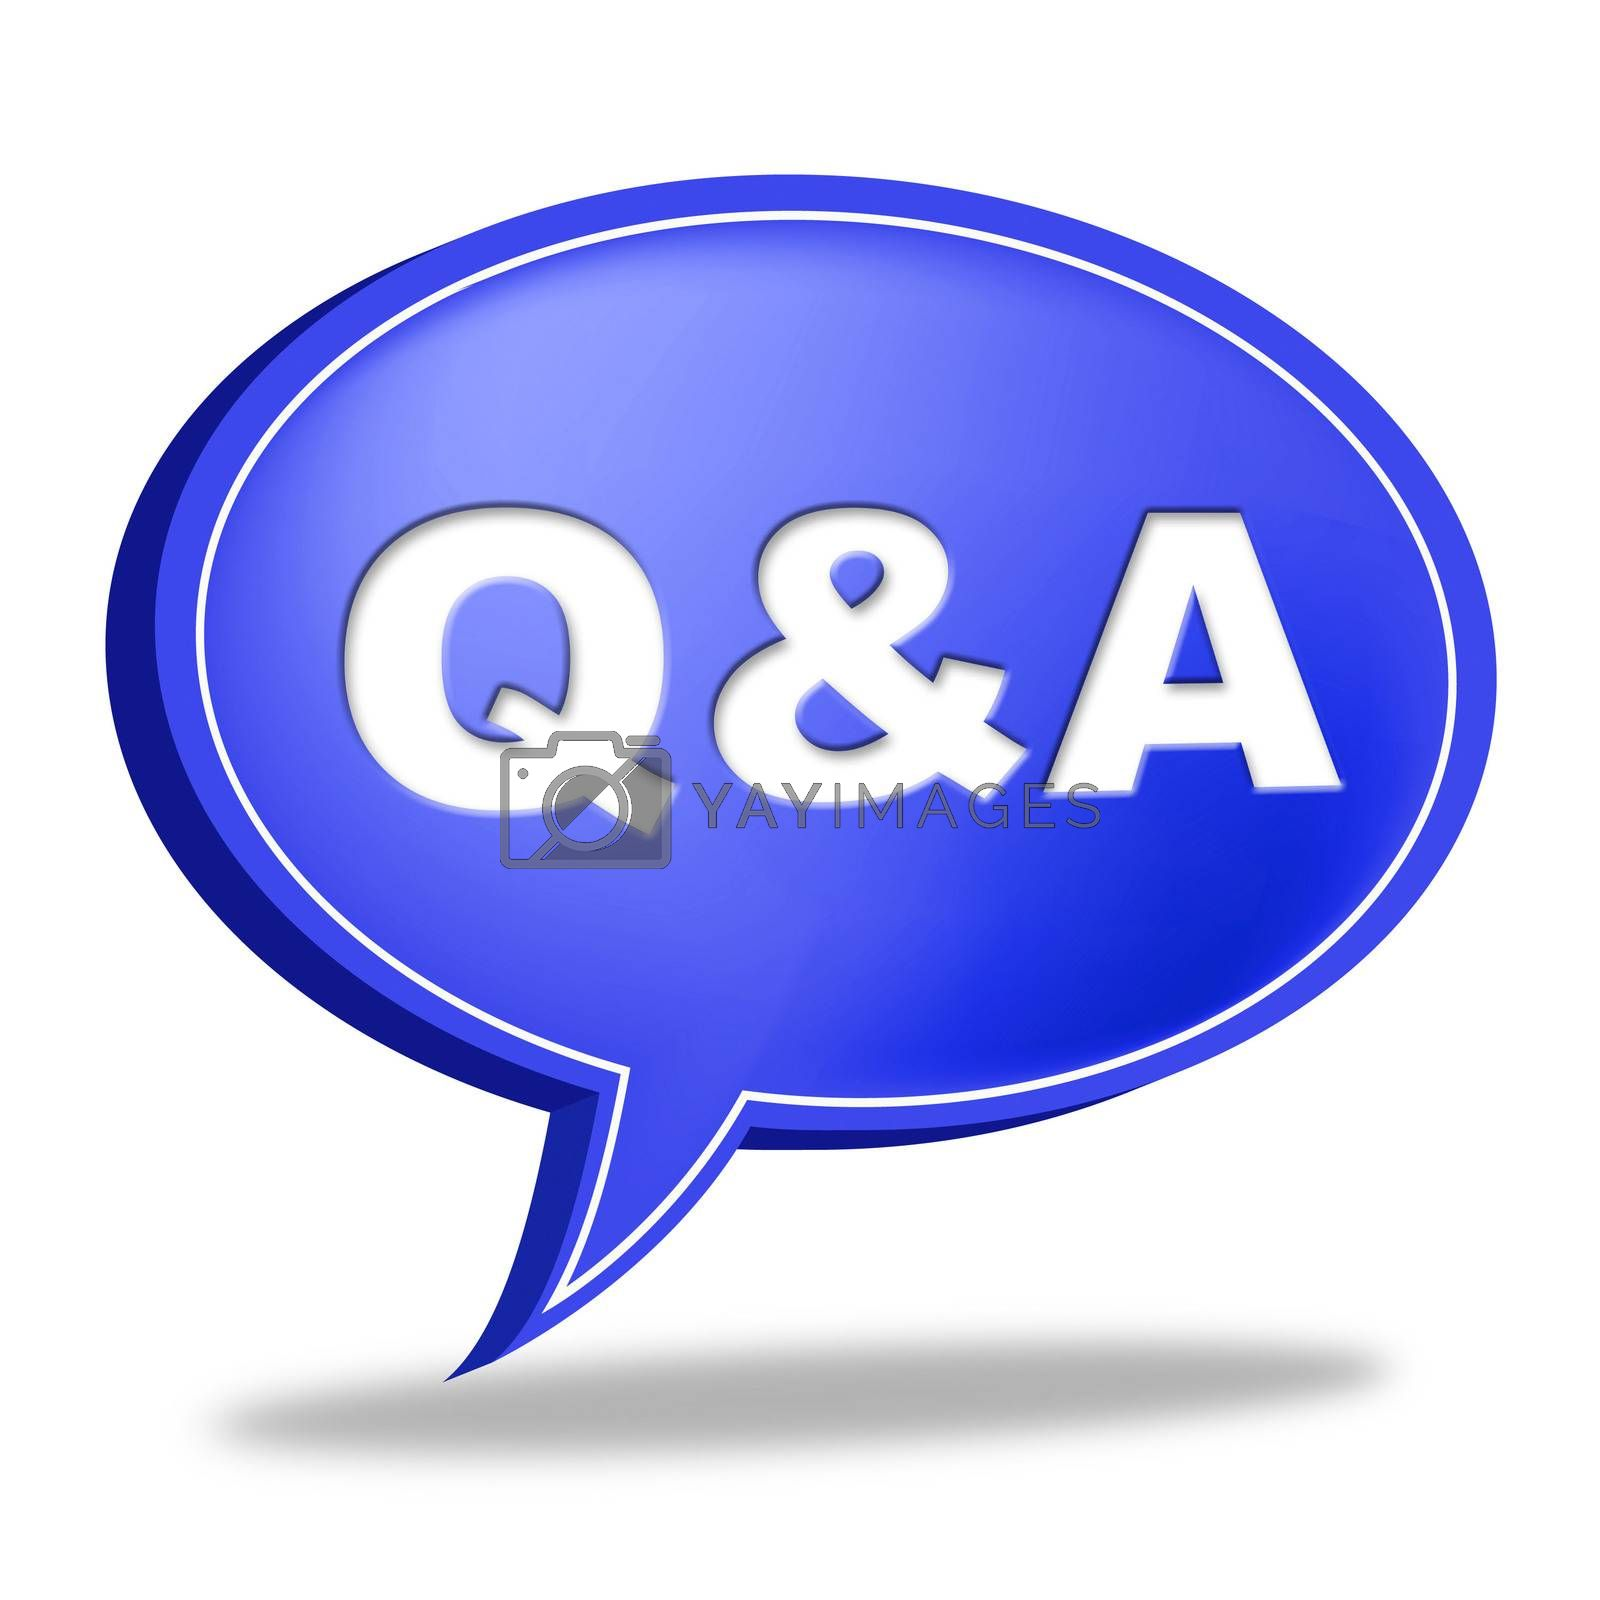 Q And A Shows Question Advice And Help by stuartmiles